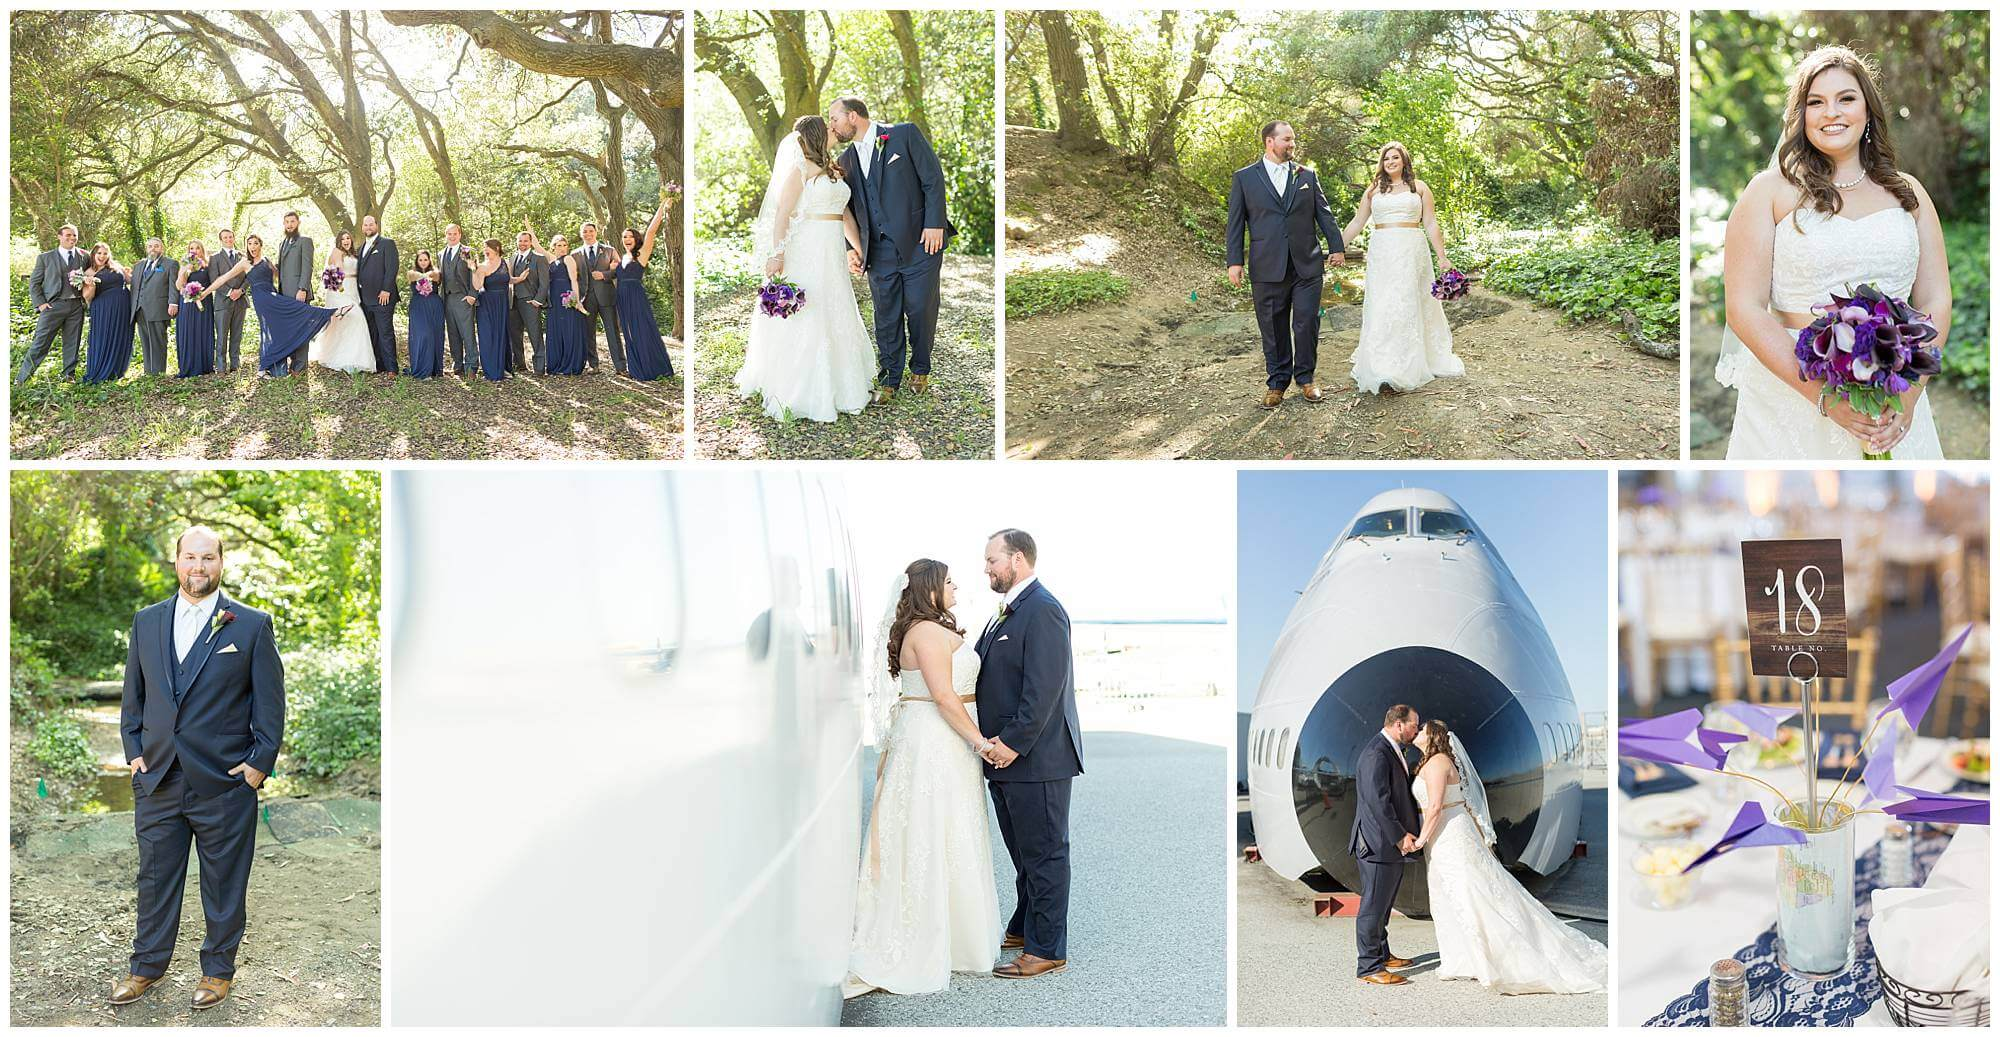 Collage of photos from Joanna and Jim's wedding